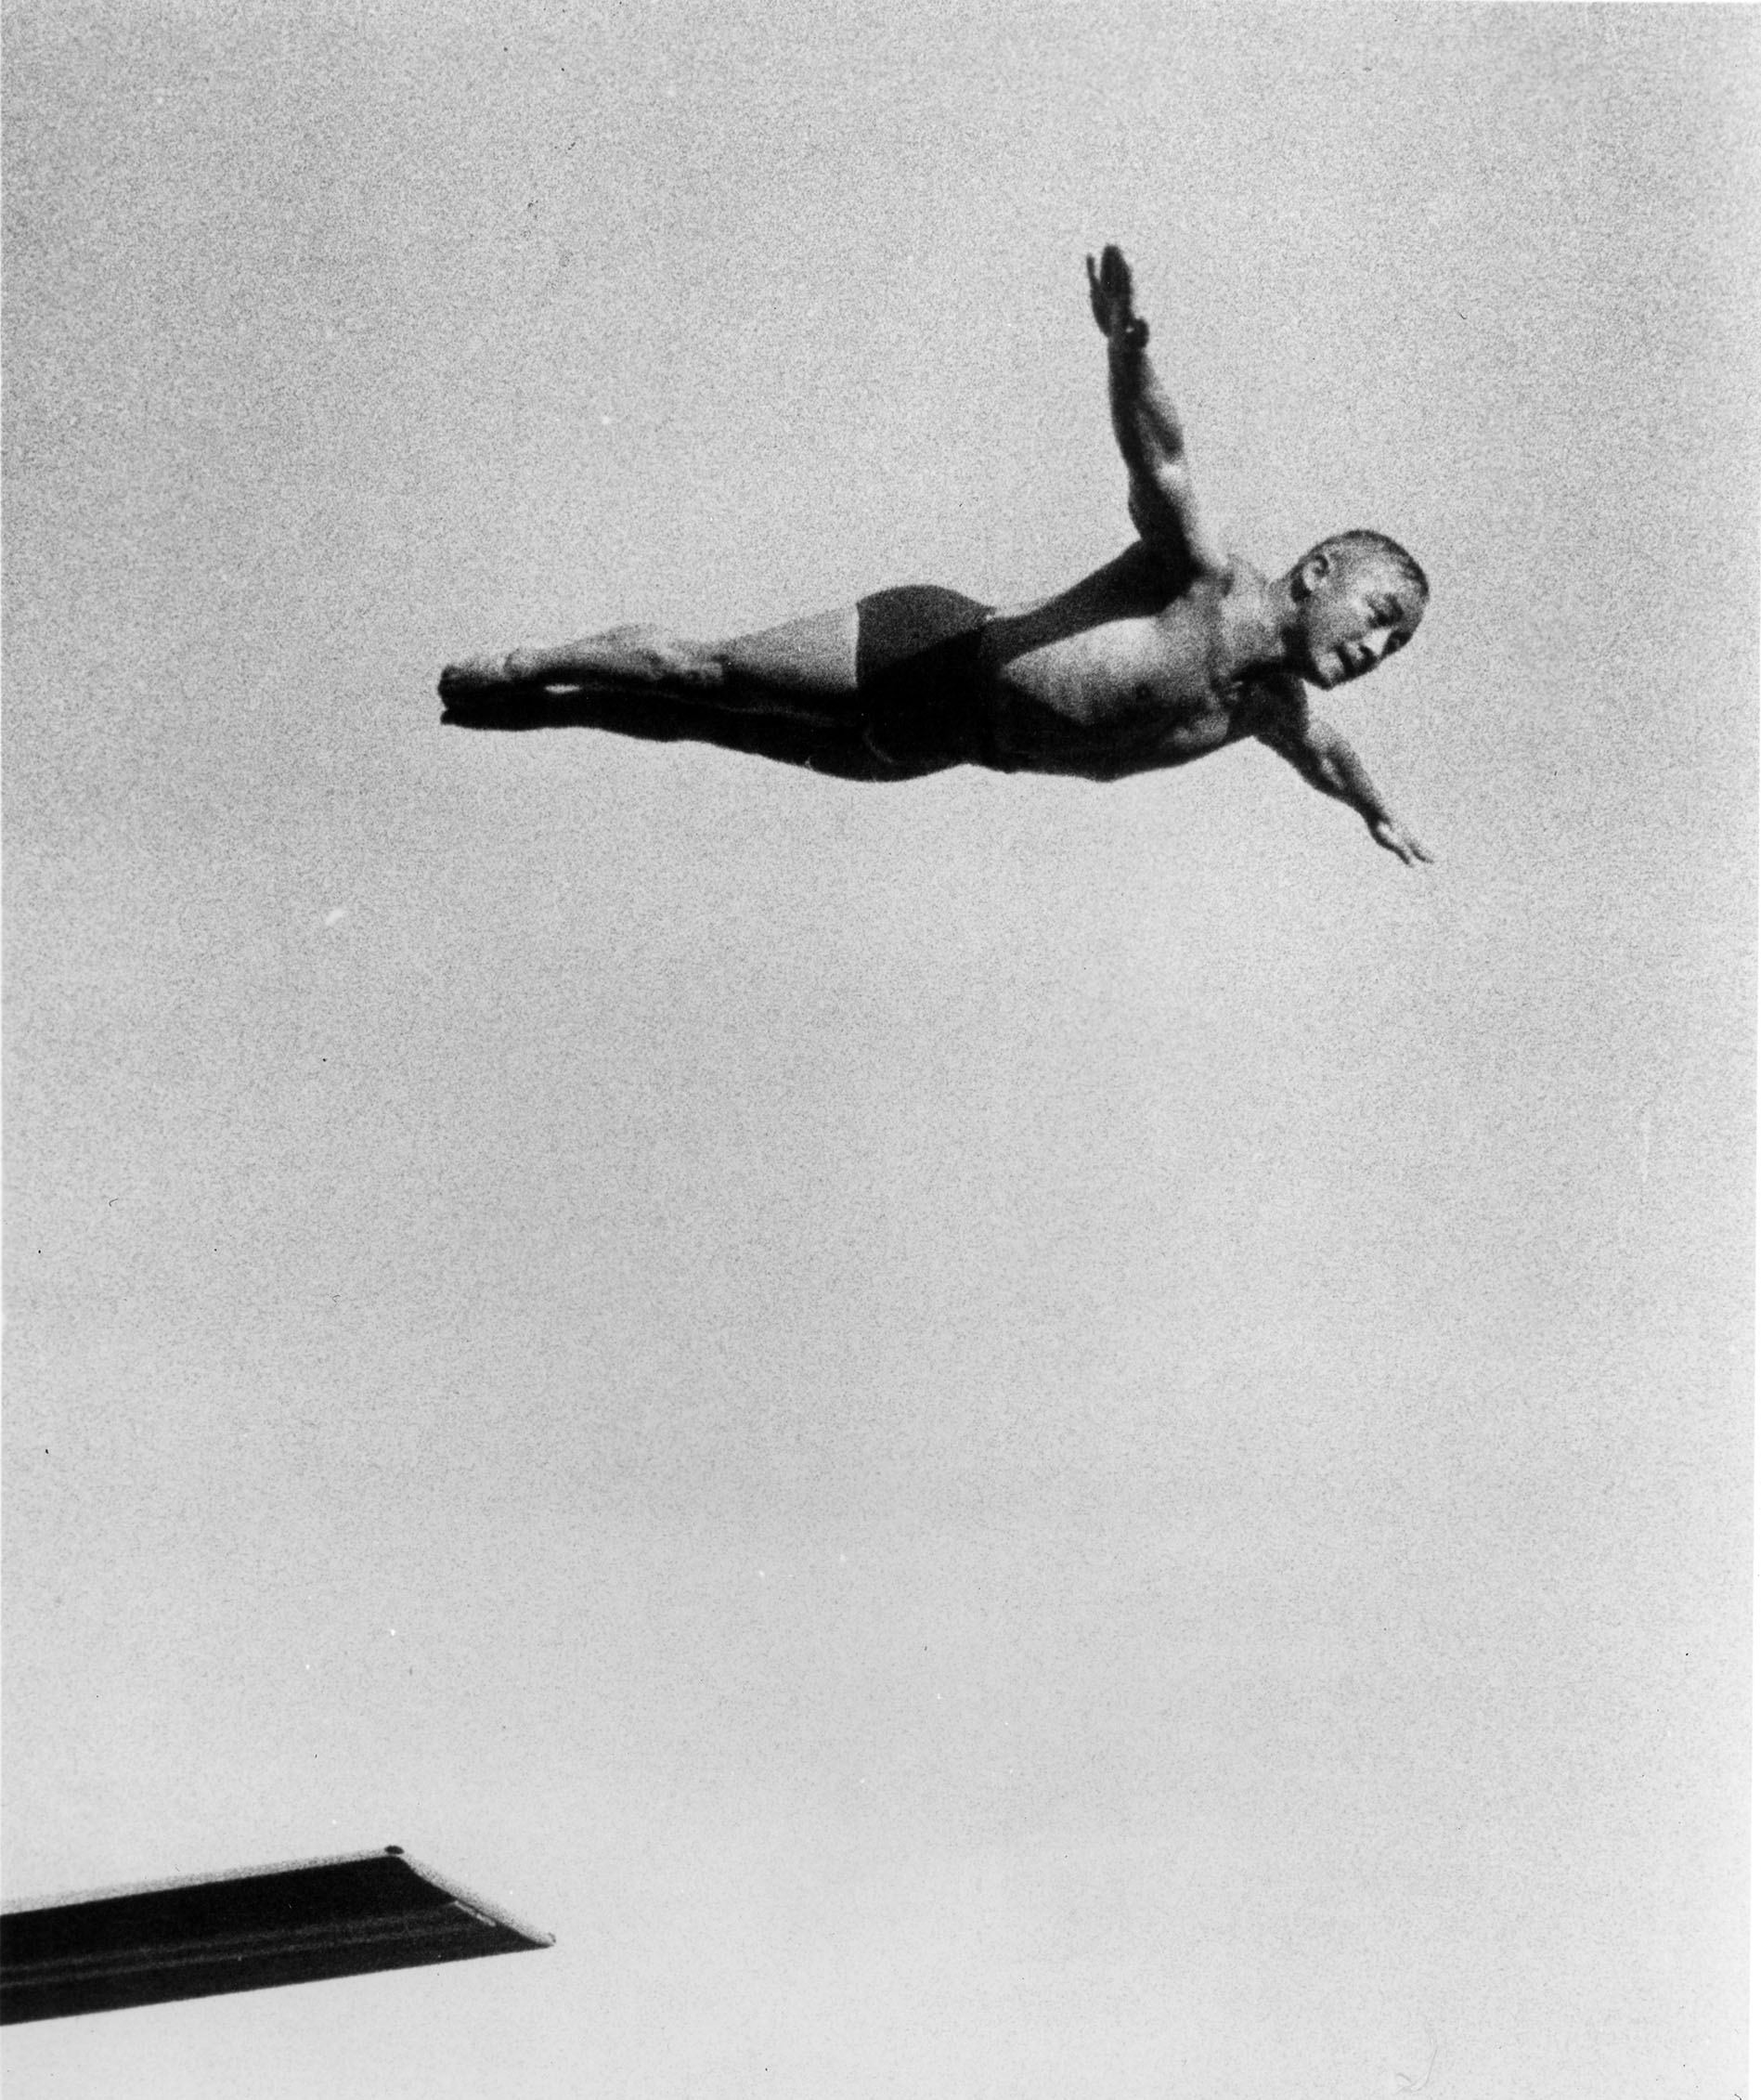 Sammy Lee diving